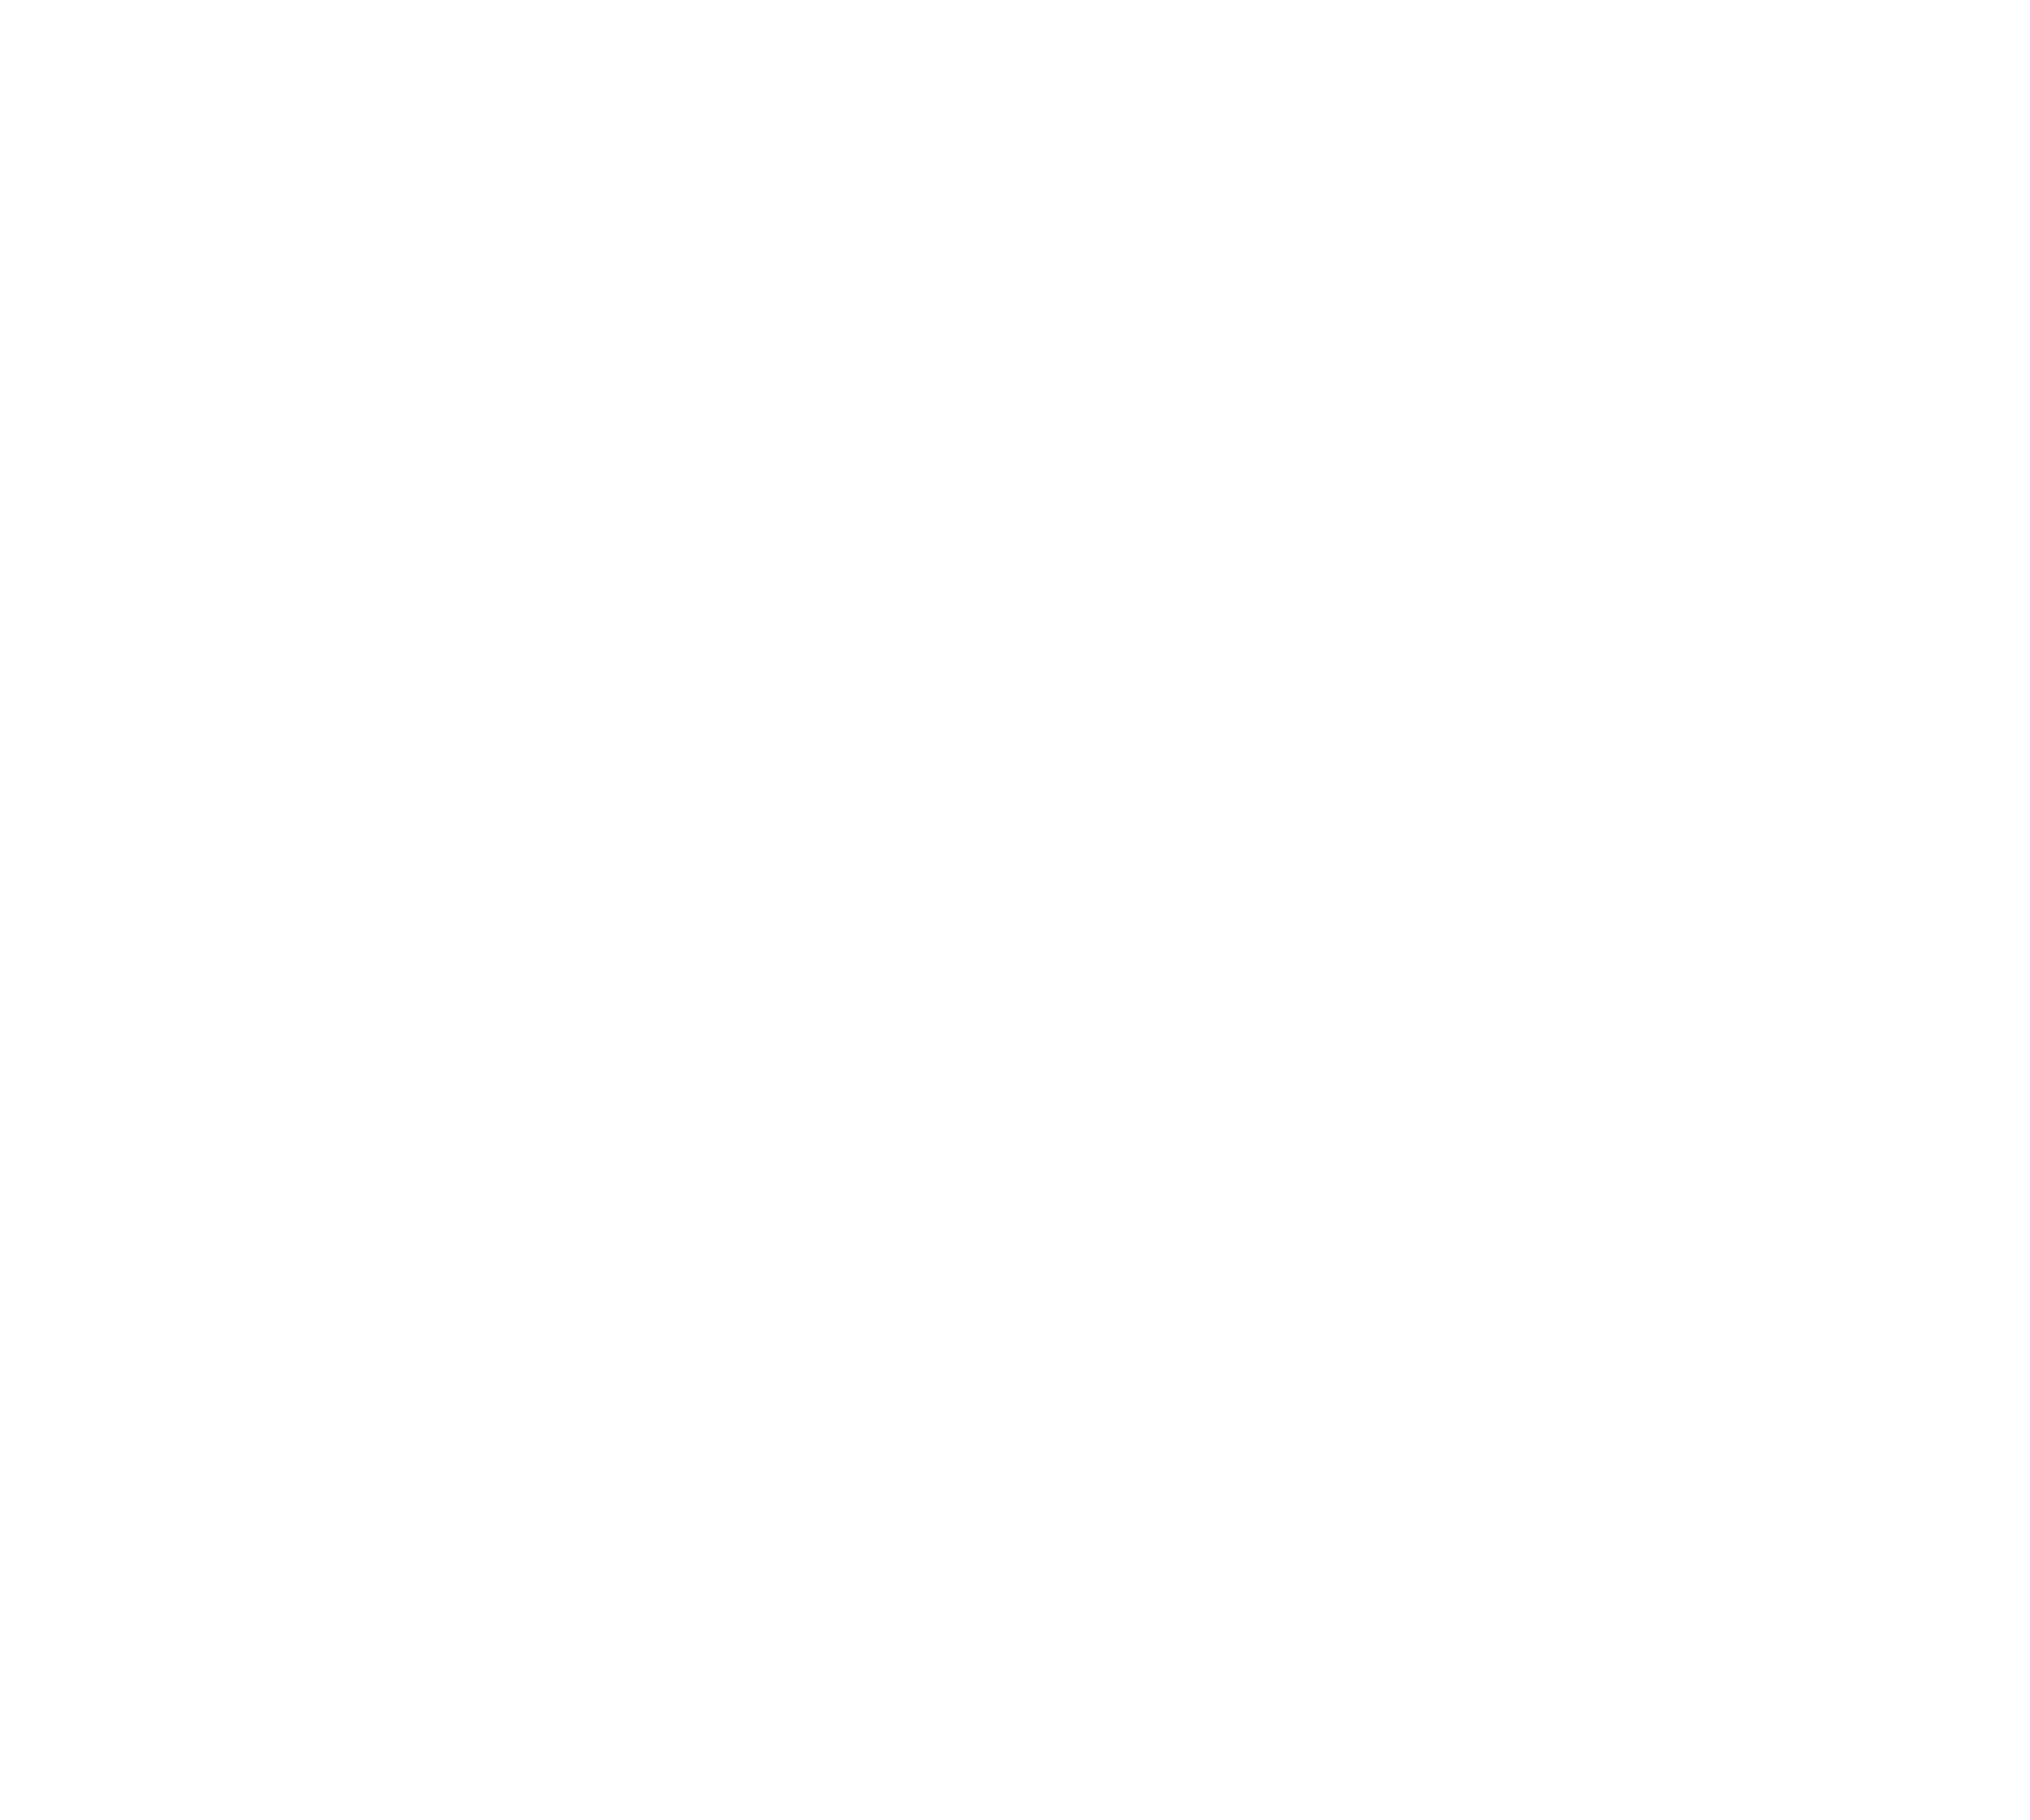 gdlcleaning